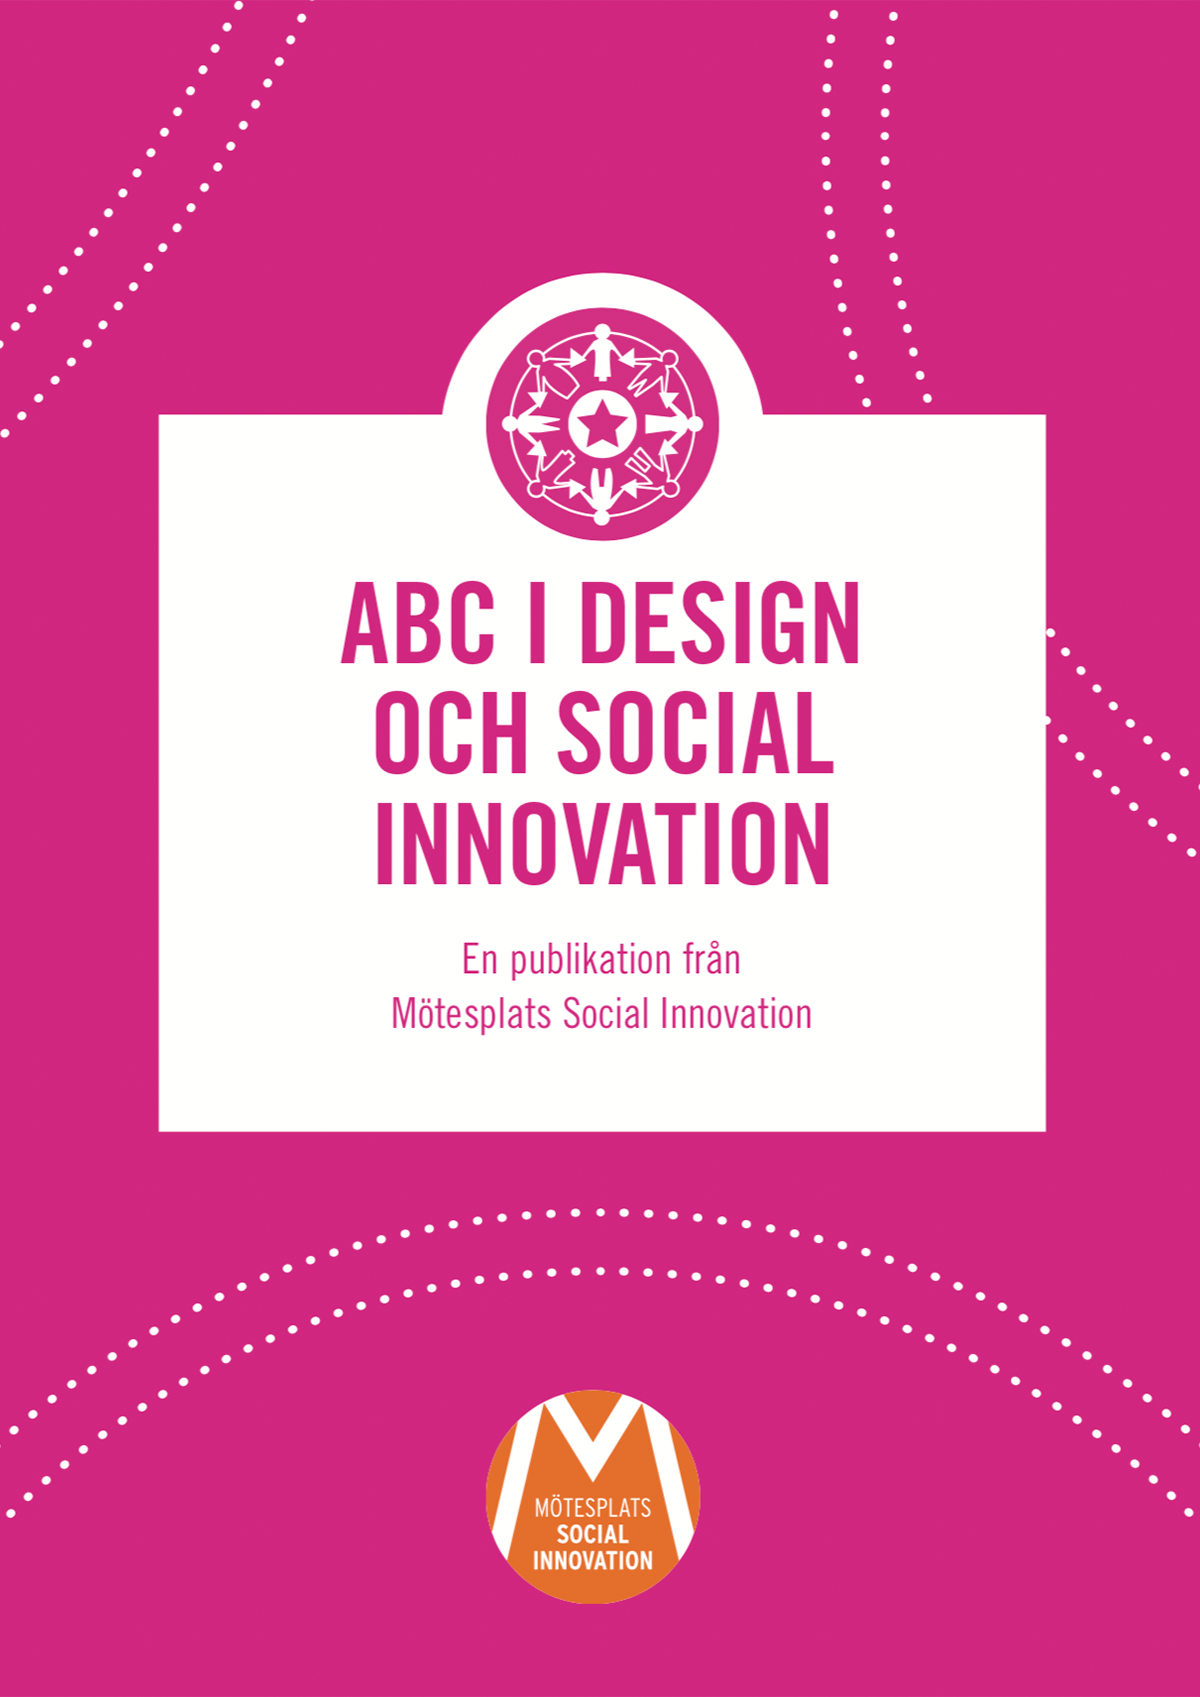 ABC i design och social innovation (2014)